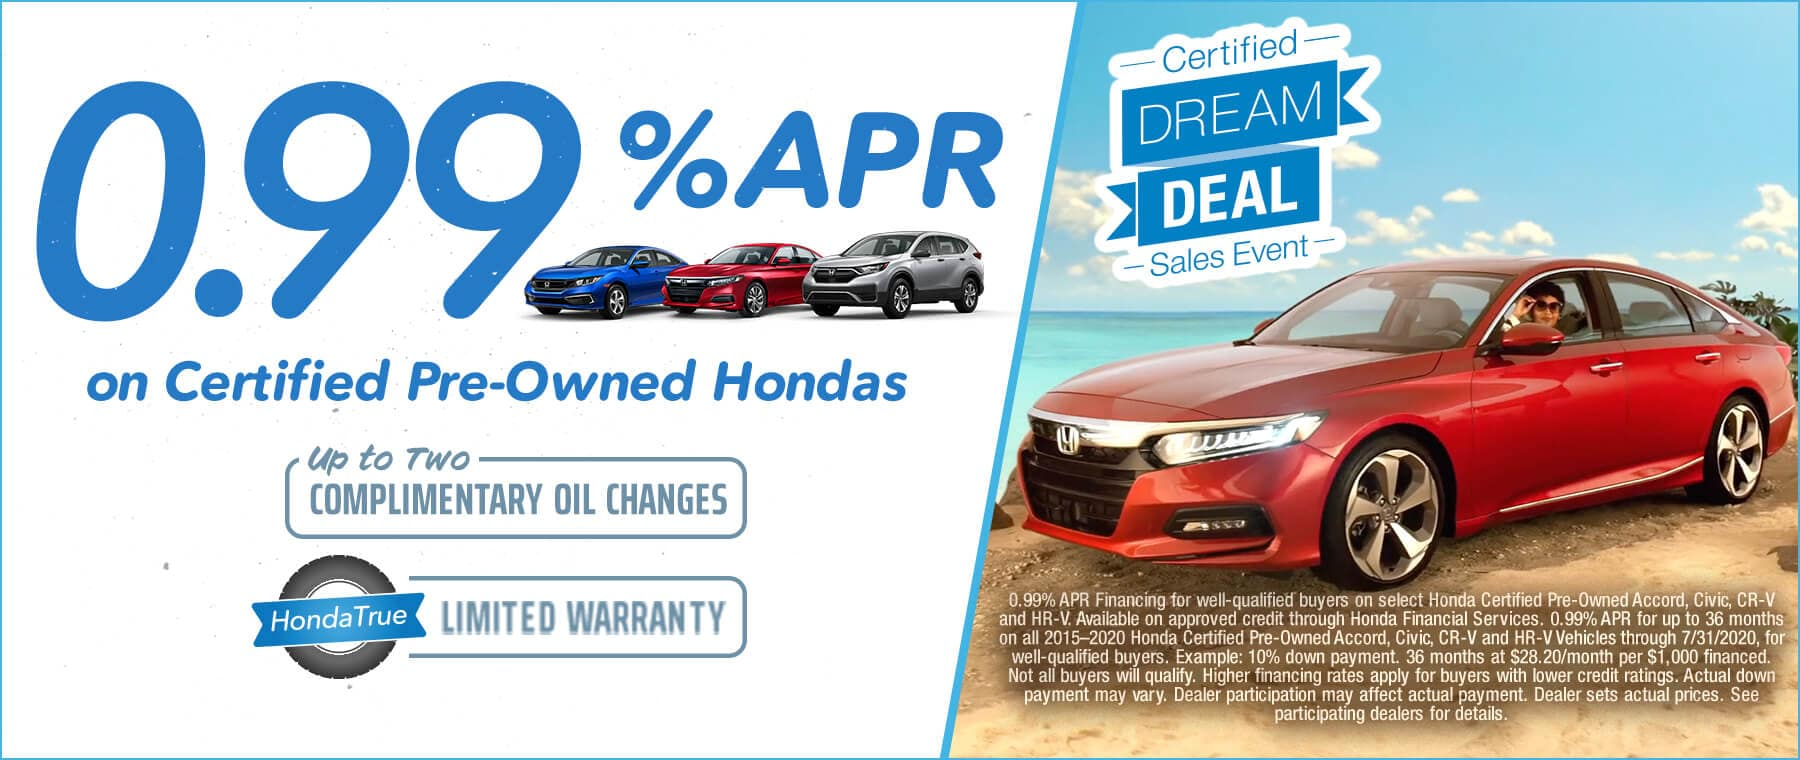 0.99% ARP on Certified Pre-Owned Accord, Civic, CR-V, and HR-V